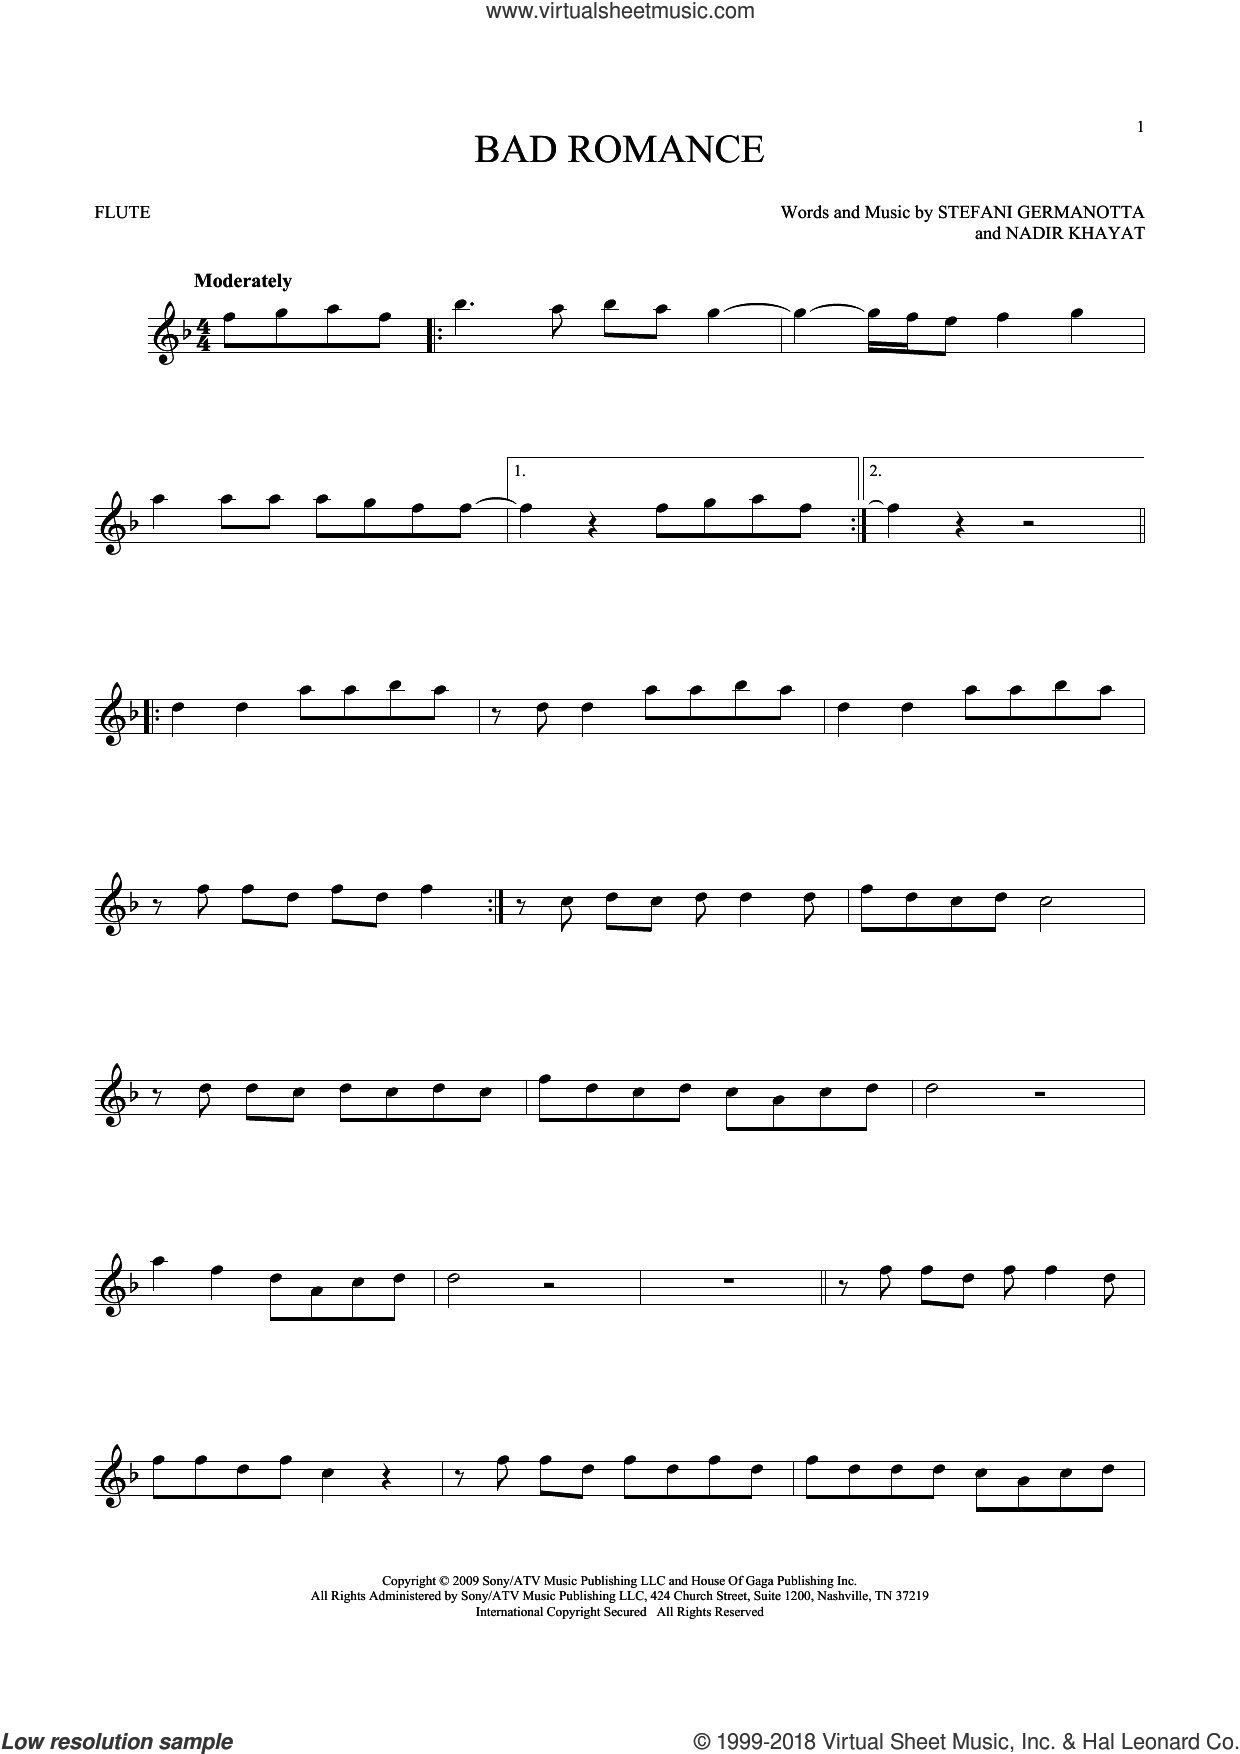 Bad Romance sheet music for flute solo by Lady Gaga and Nadir Khayat, intermediate skill level